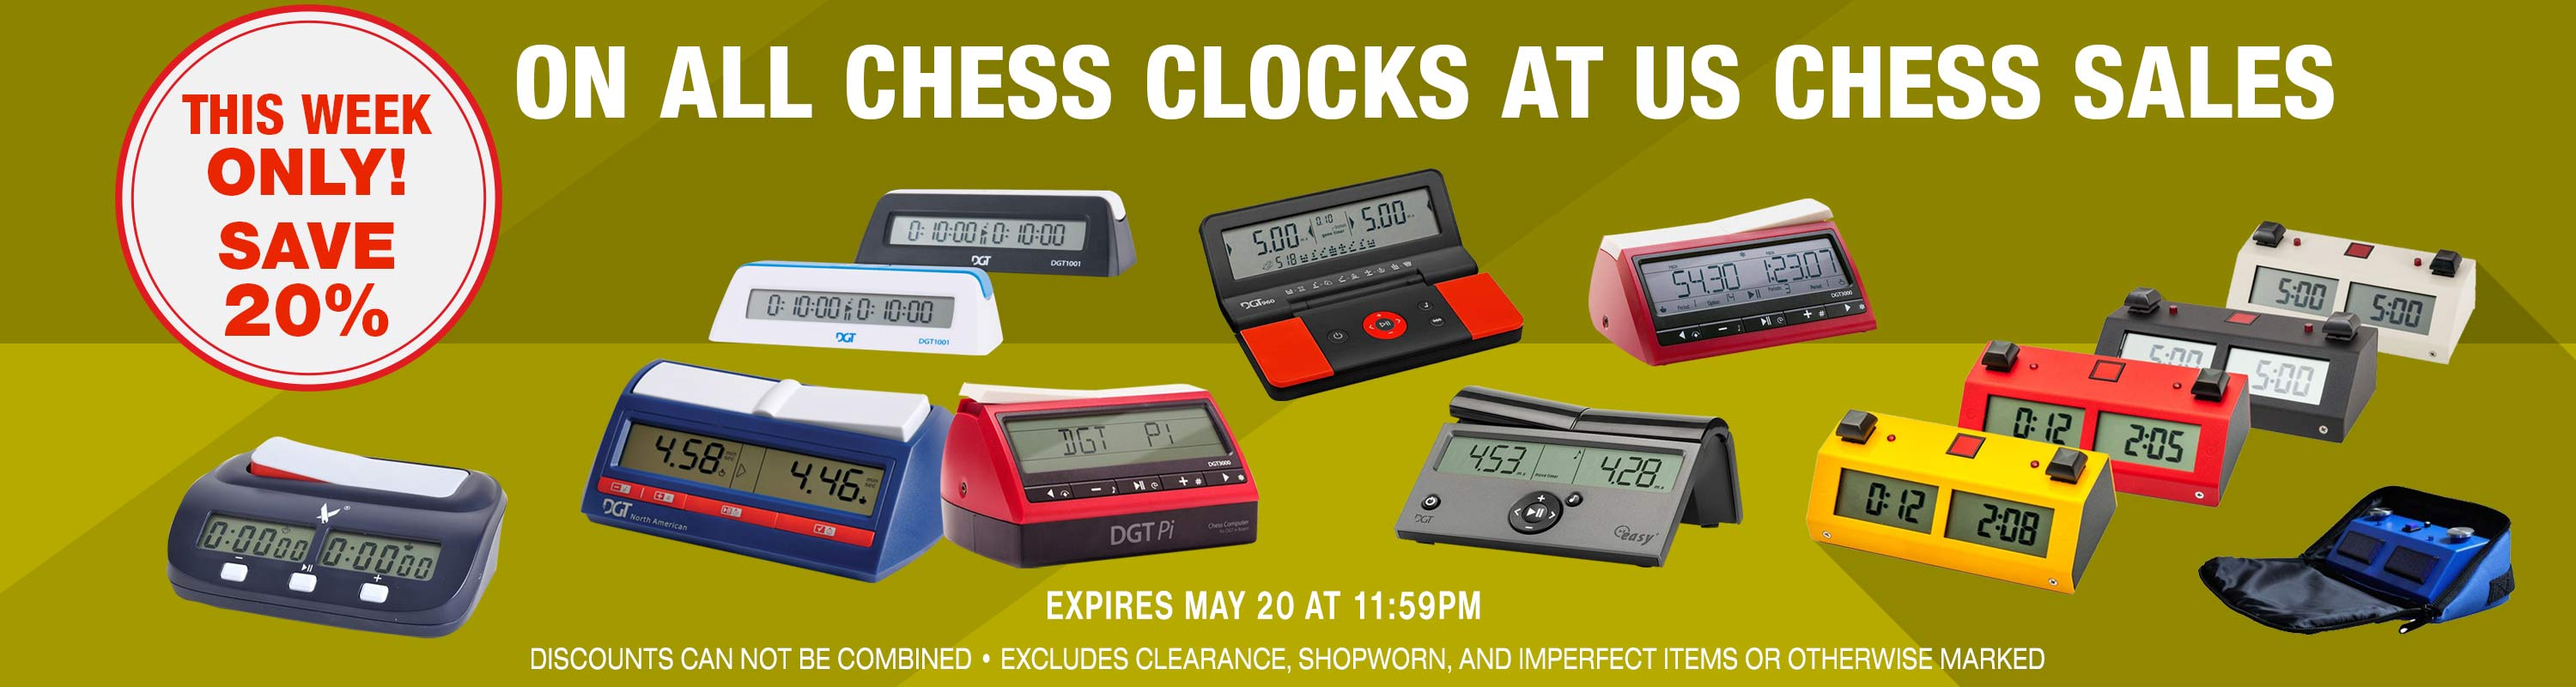 The Week Only: Save 20% on all Chess Clocks at US Chess Sales